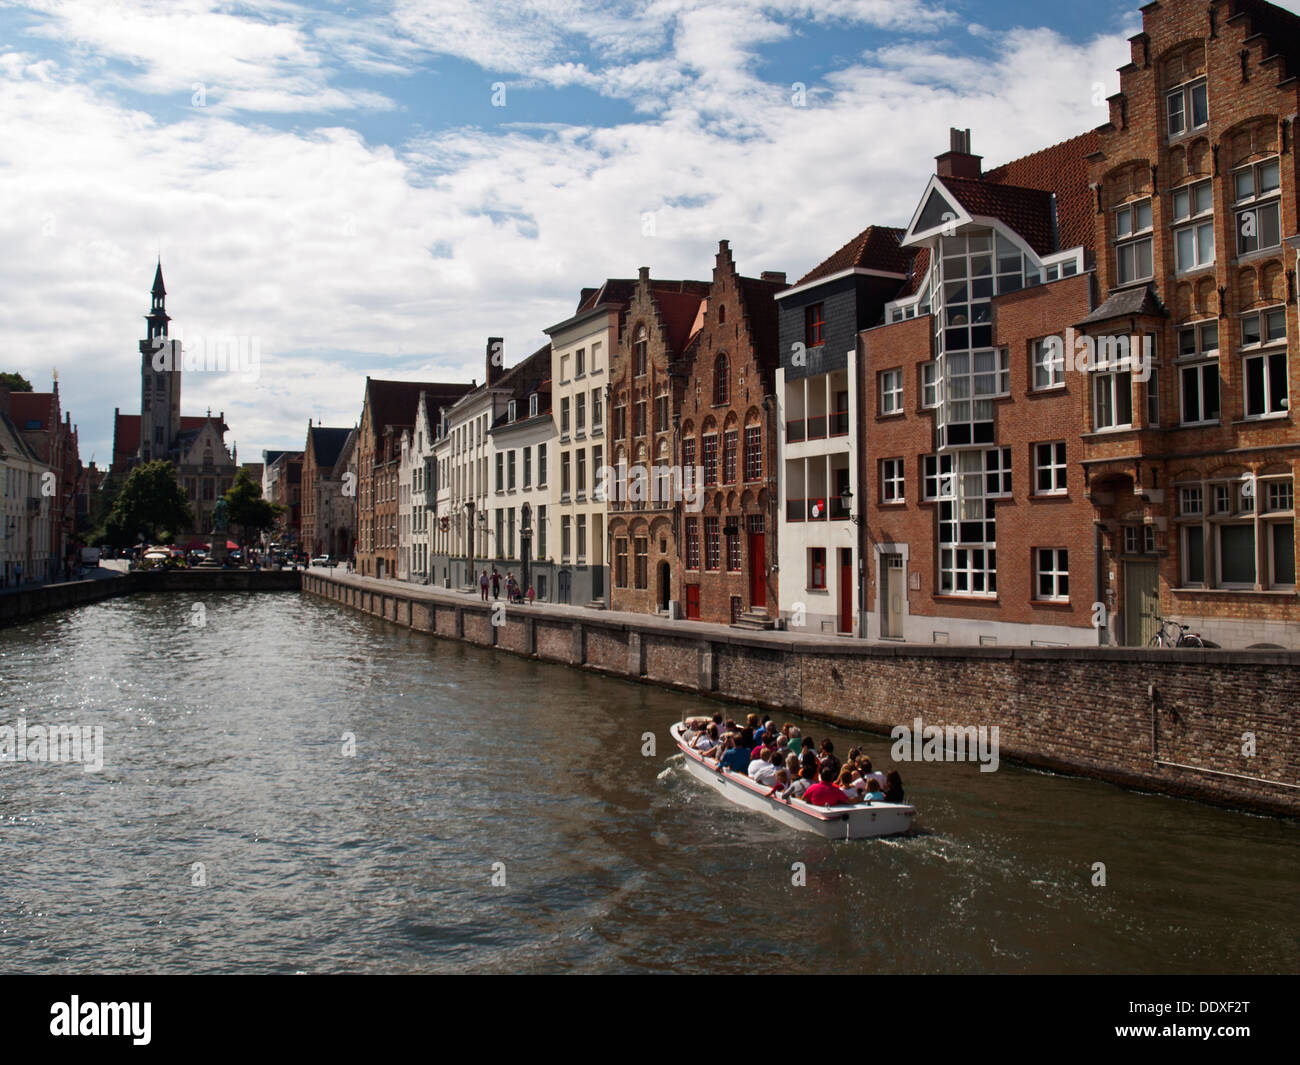 Bruges guilded canal houses and tourist boat - Stock Image